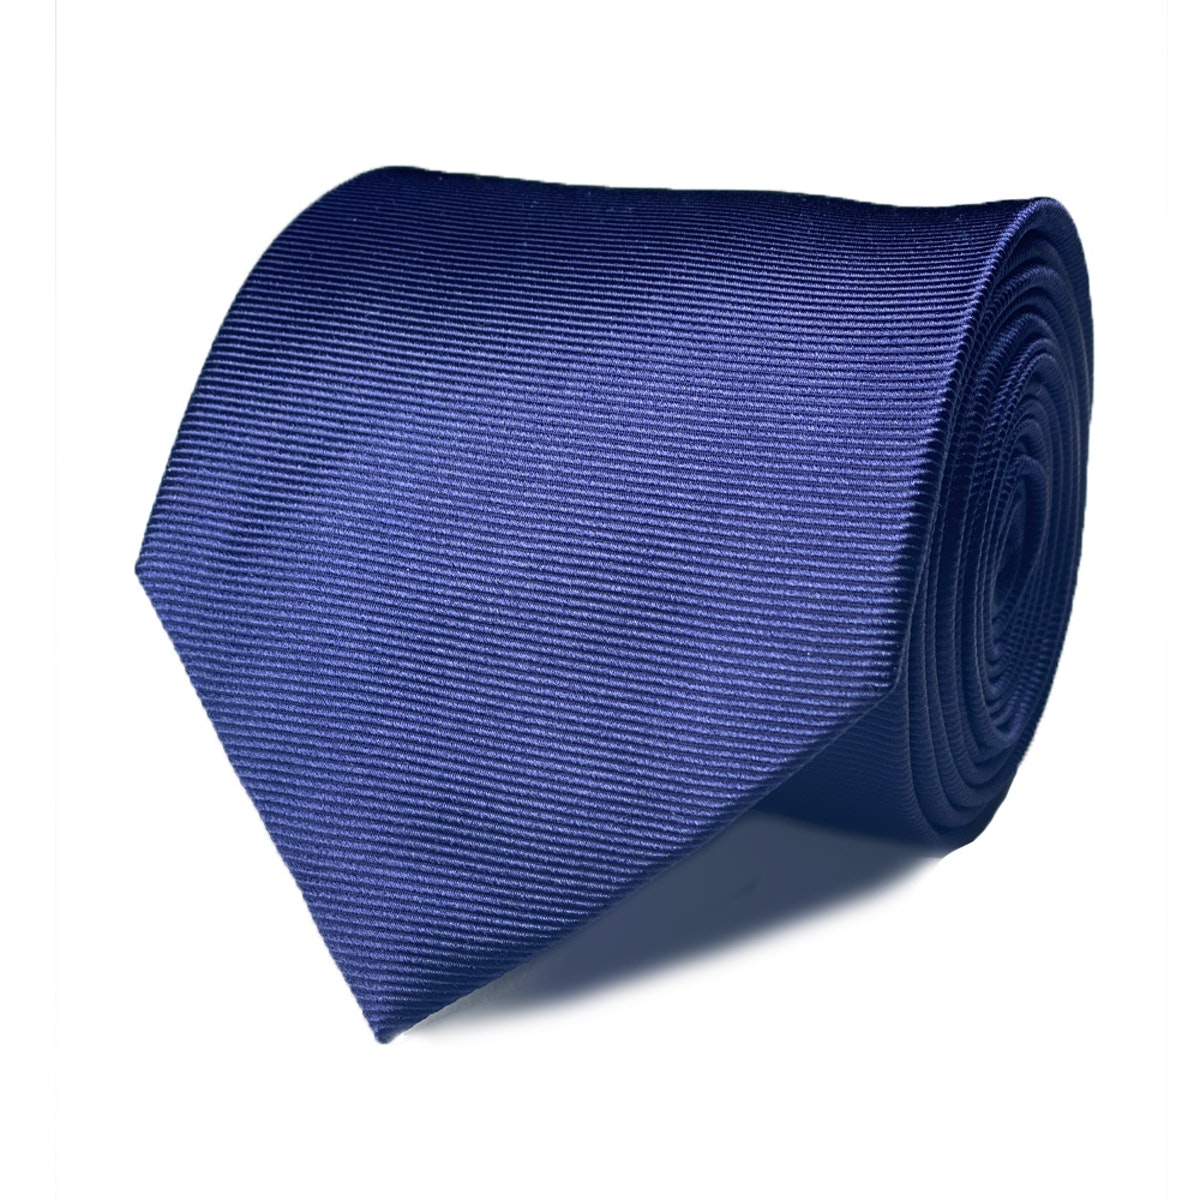 InStitchu Collection The Fasano Navy Blue Plain Silk Tie